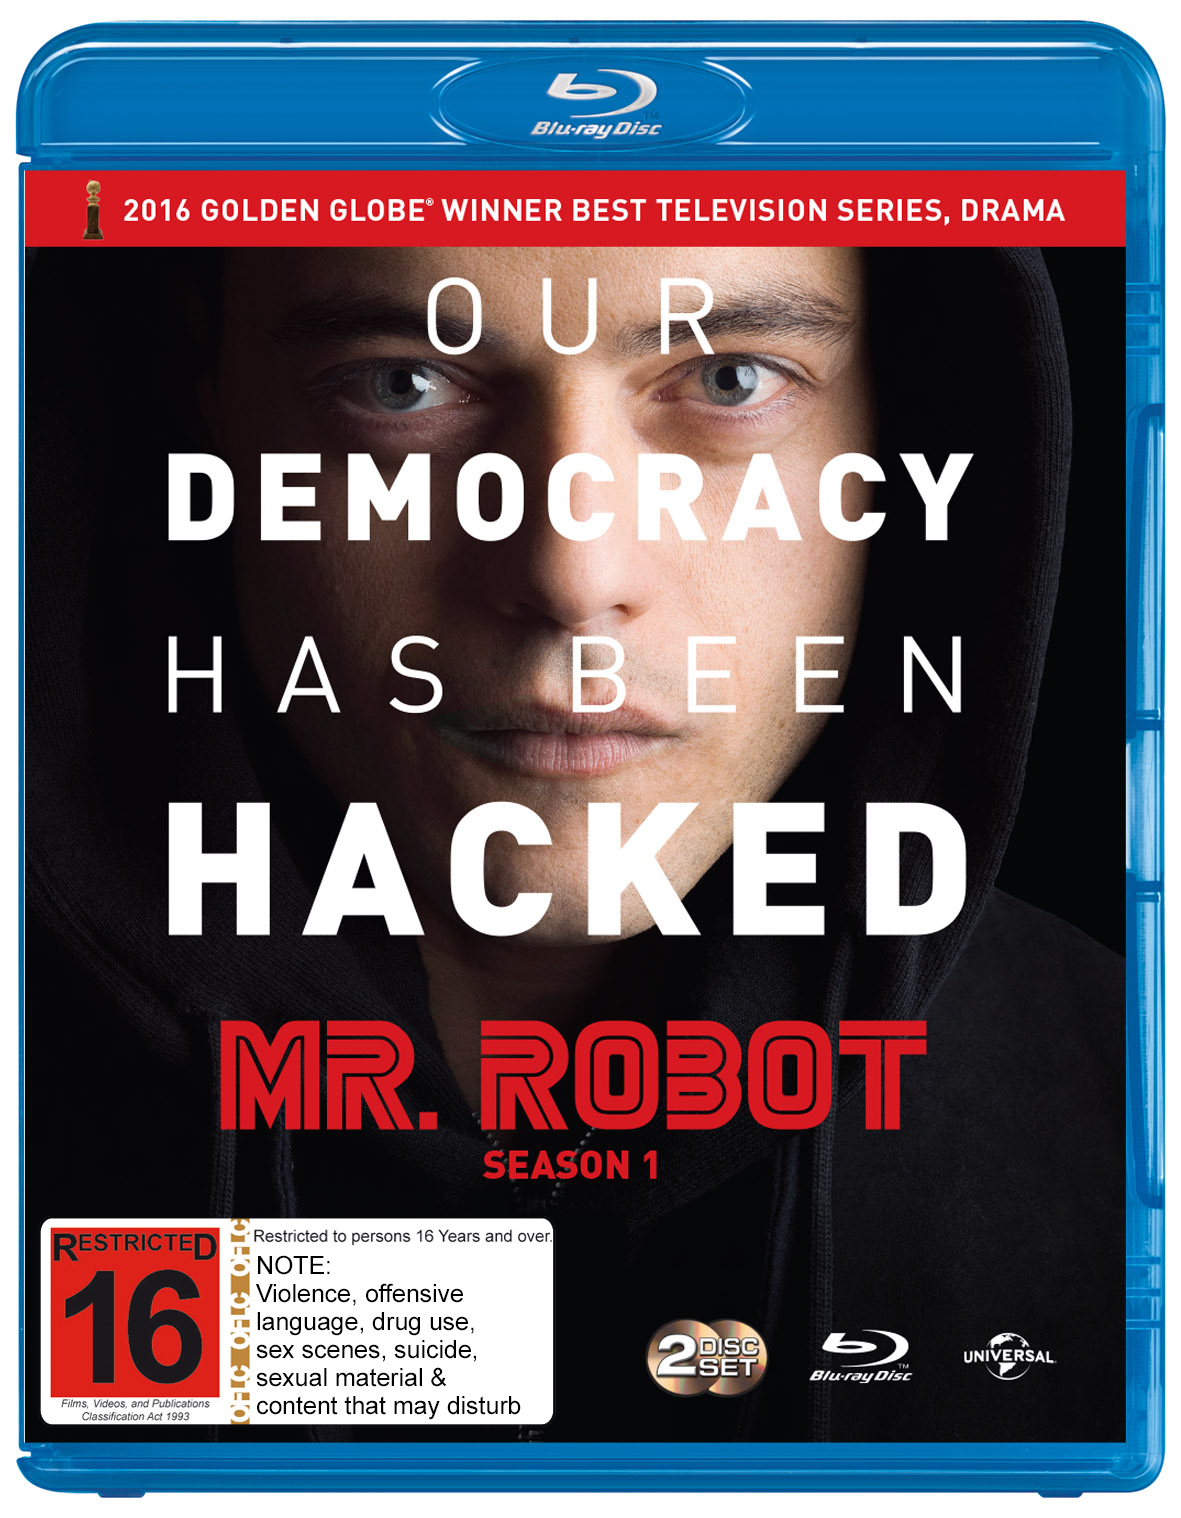 Mr Robot - The Complete First Season on Blu-ray image